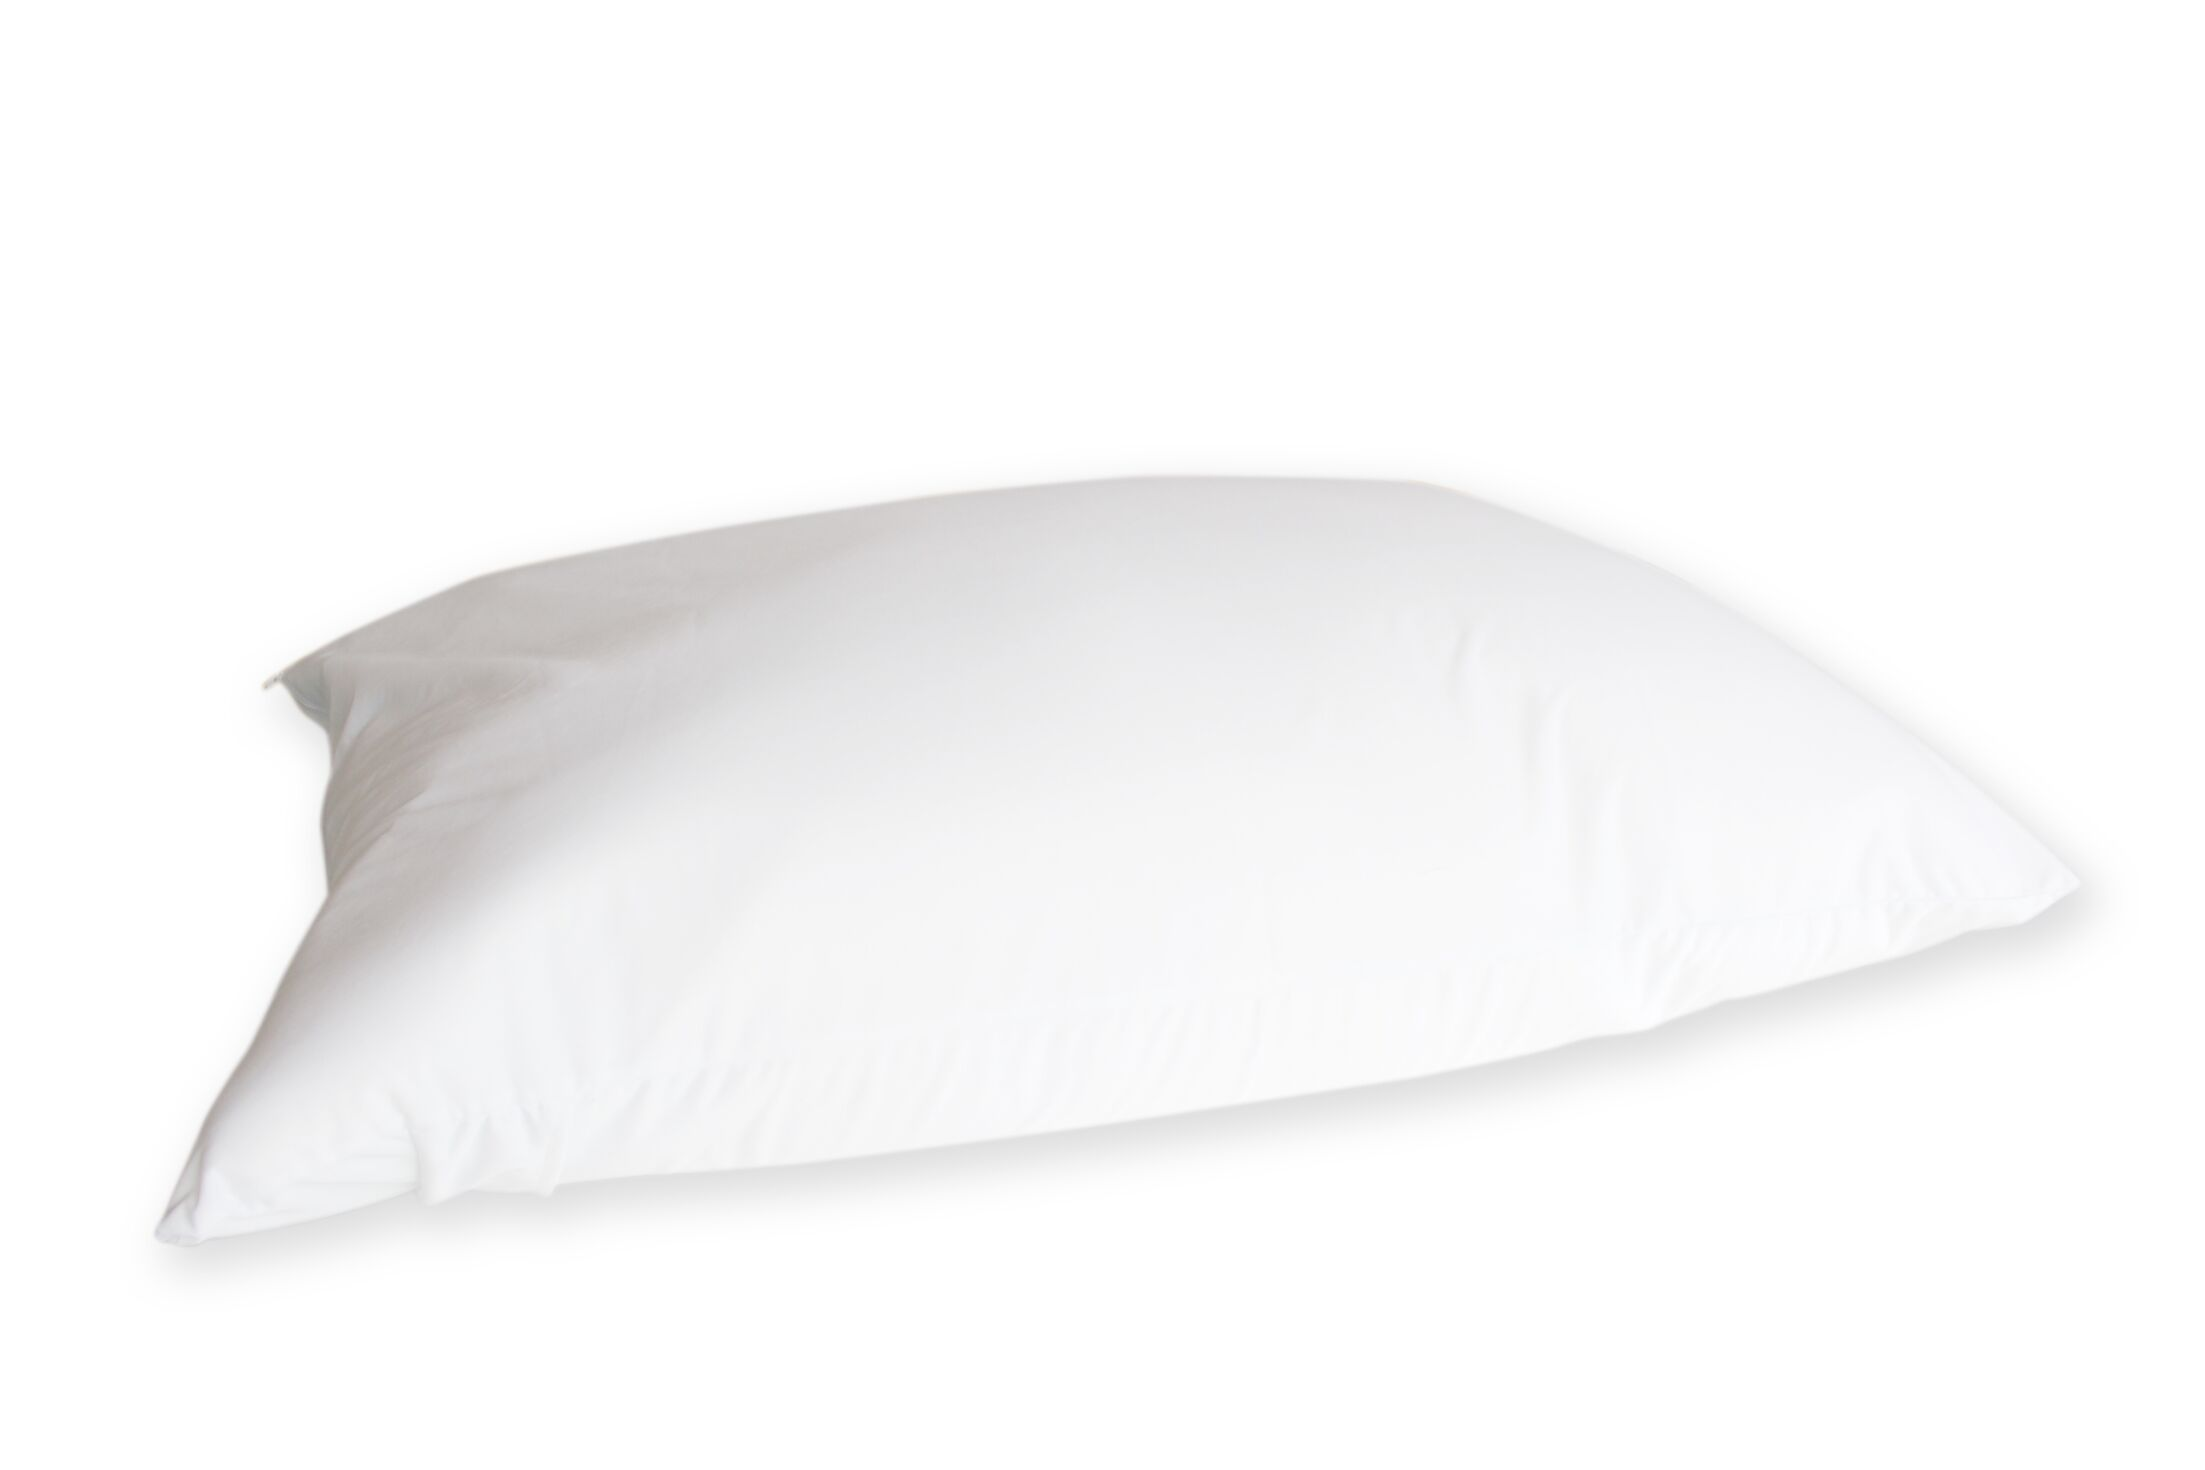 Max Protective Bed Cover Size: 0.35